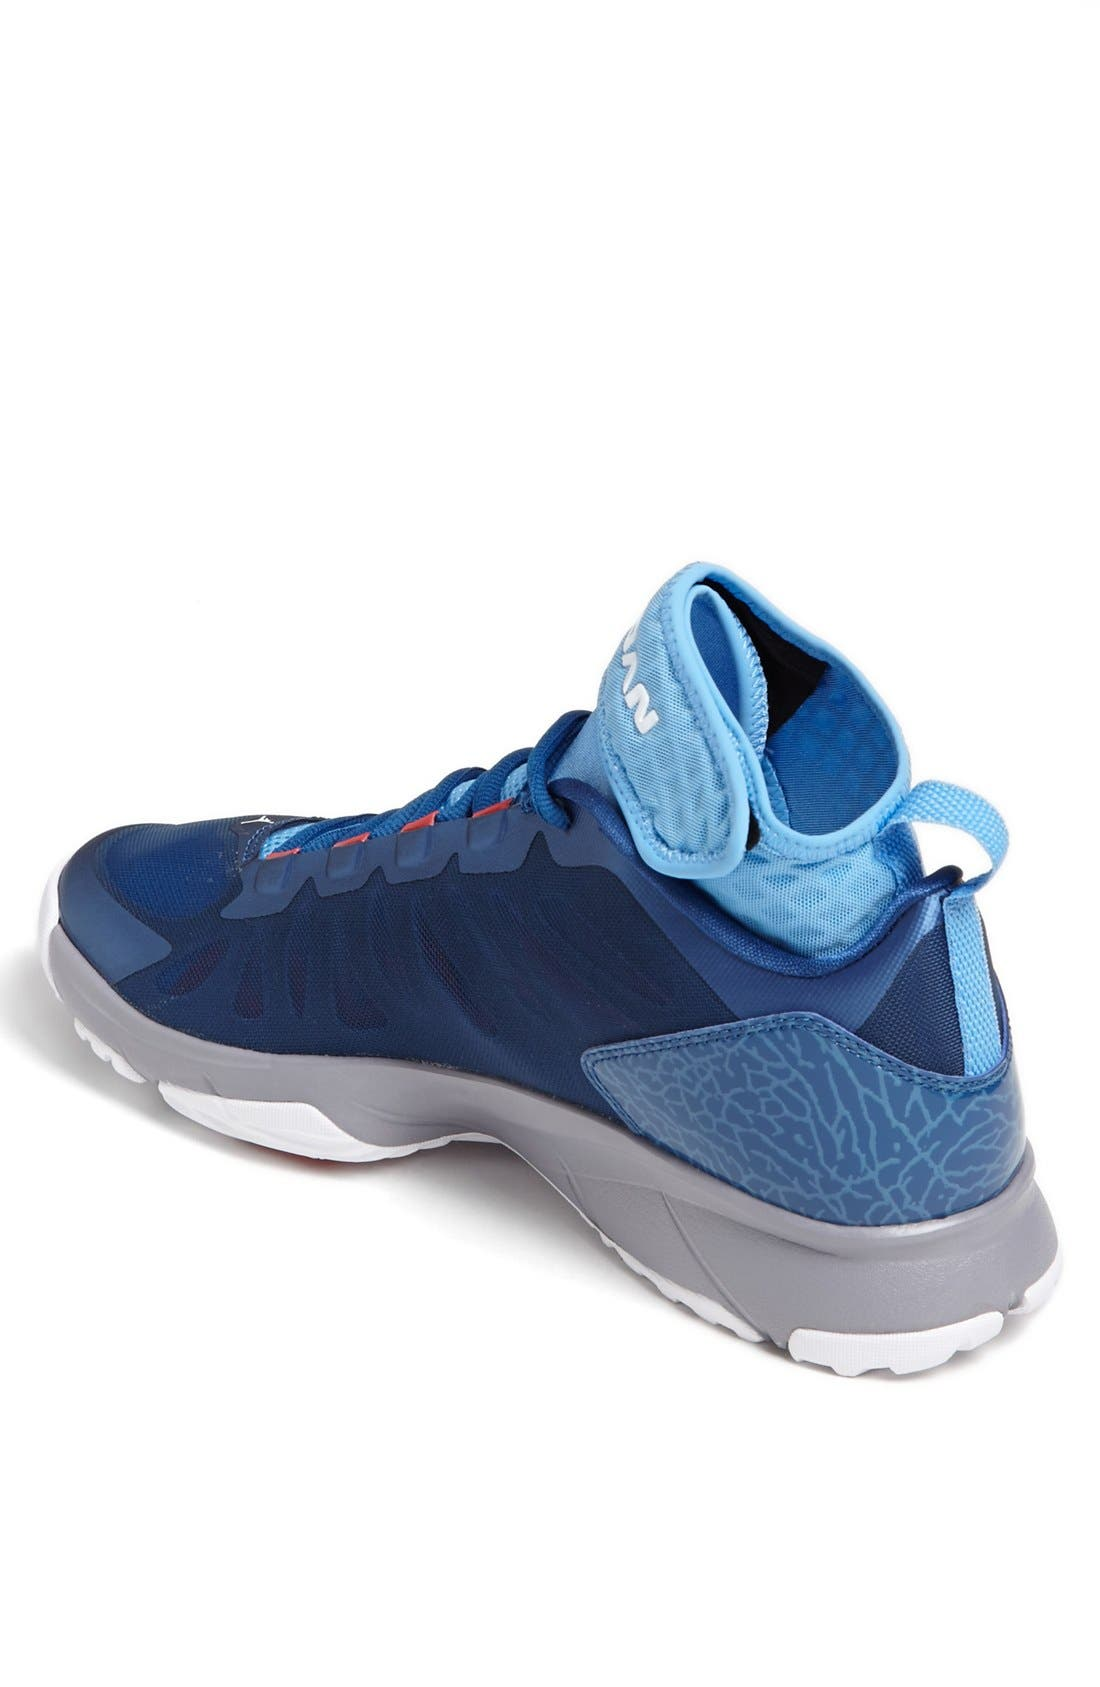 Alternate Image 2  - Nike 'Jordan Dominate Pro' Training Shoe (Men)